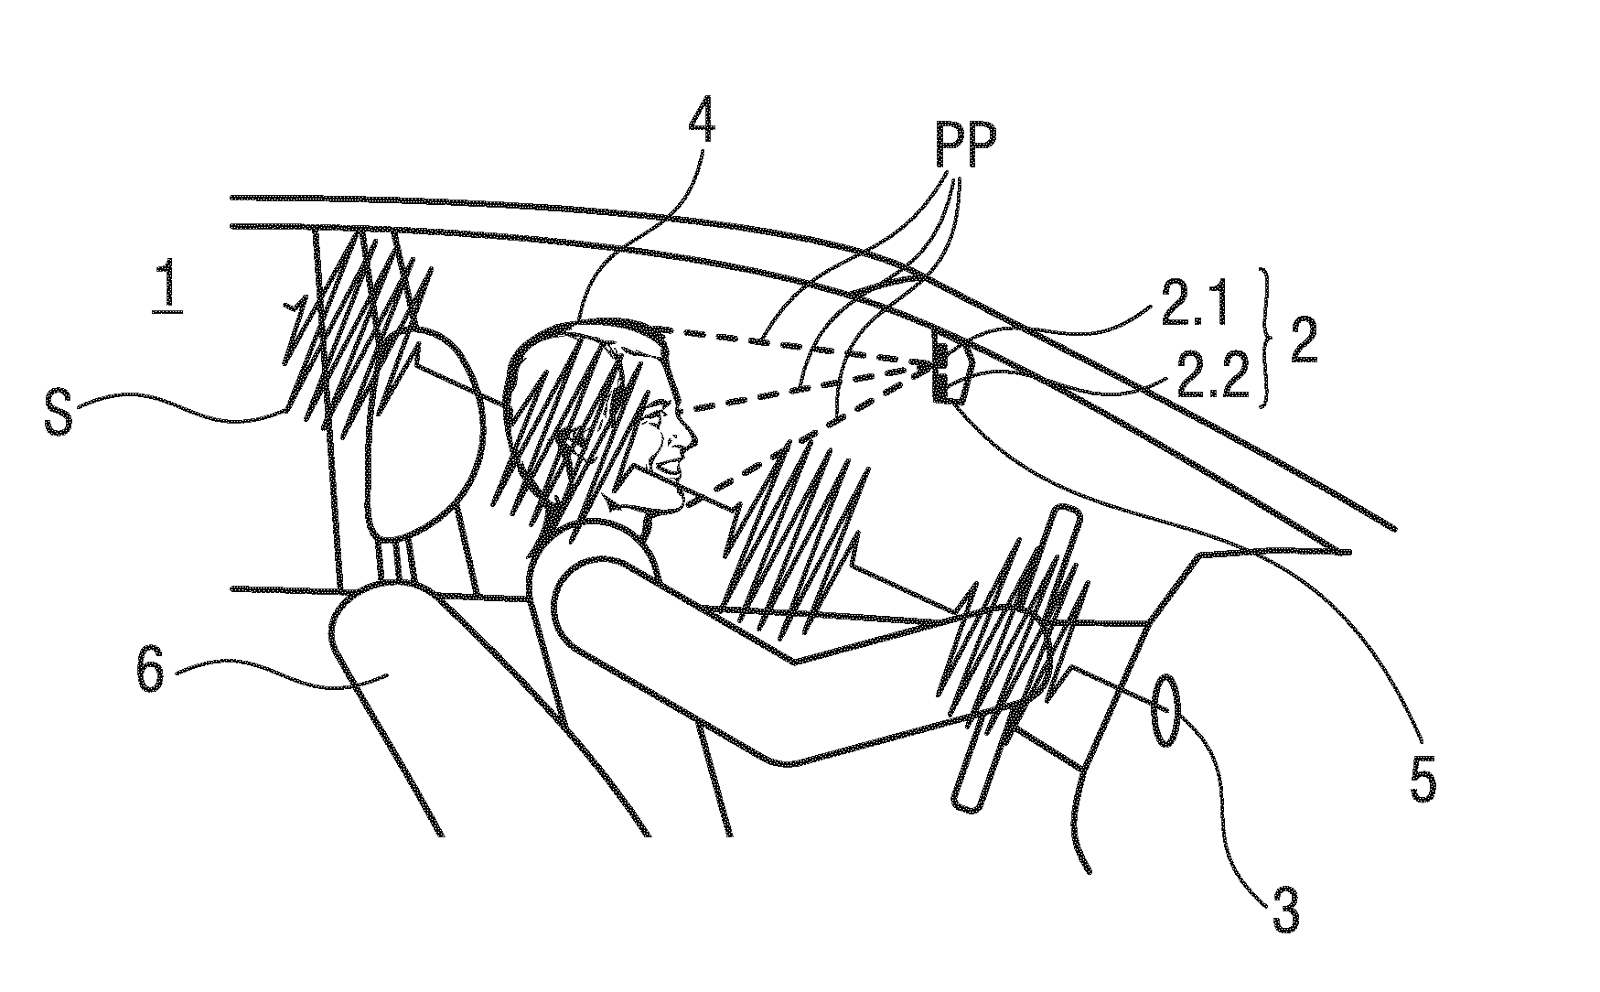 Jaguar land rover researchers trying to read driver's mind > brainwave based concentration monitoring